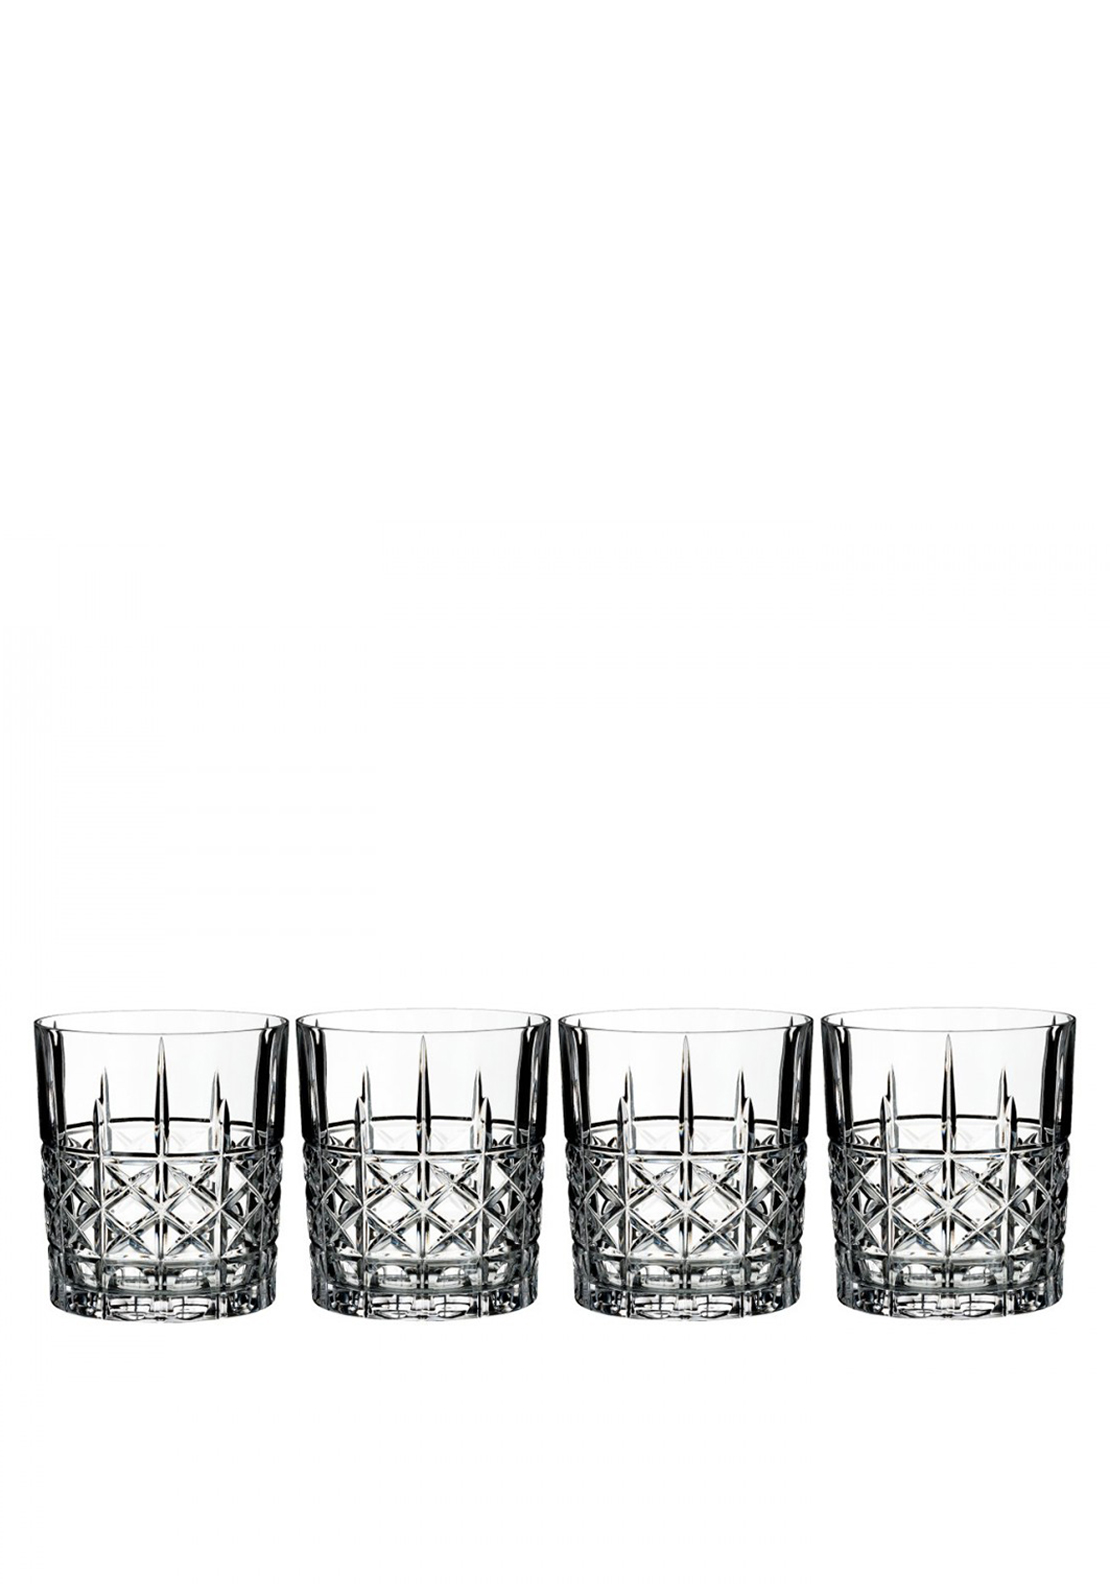 Marquis by Waterford Crystal Brady Double Old Fashioned Tumblers, Set of 4